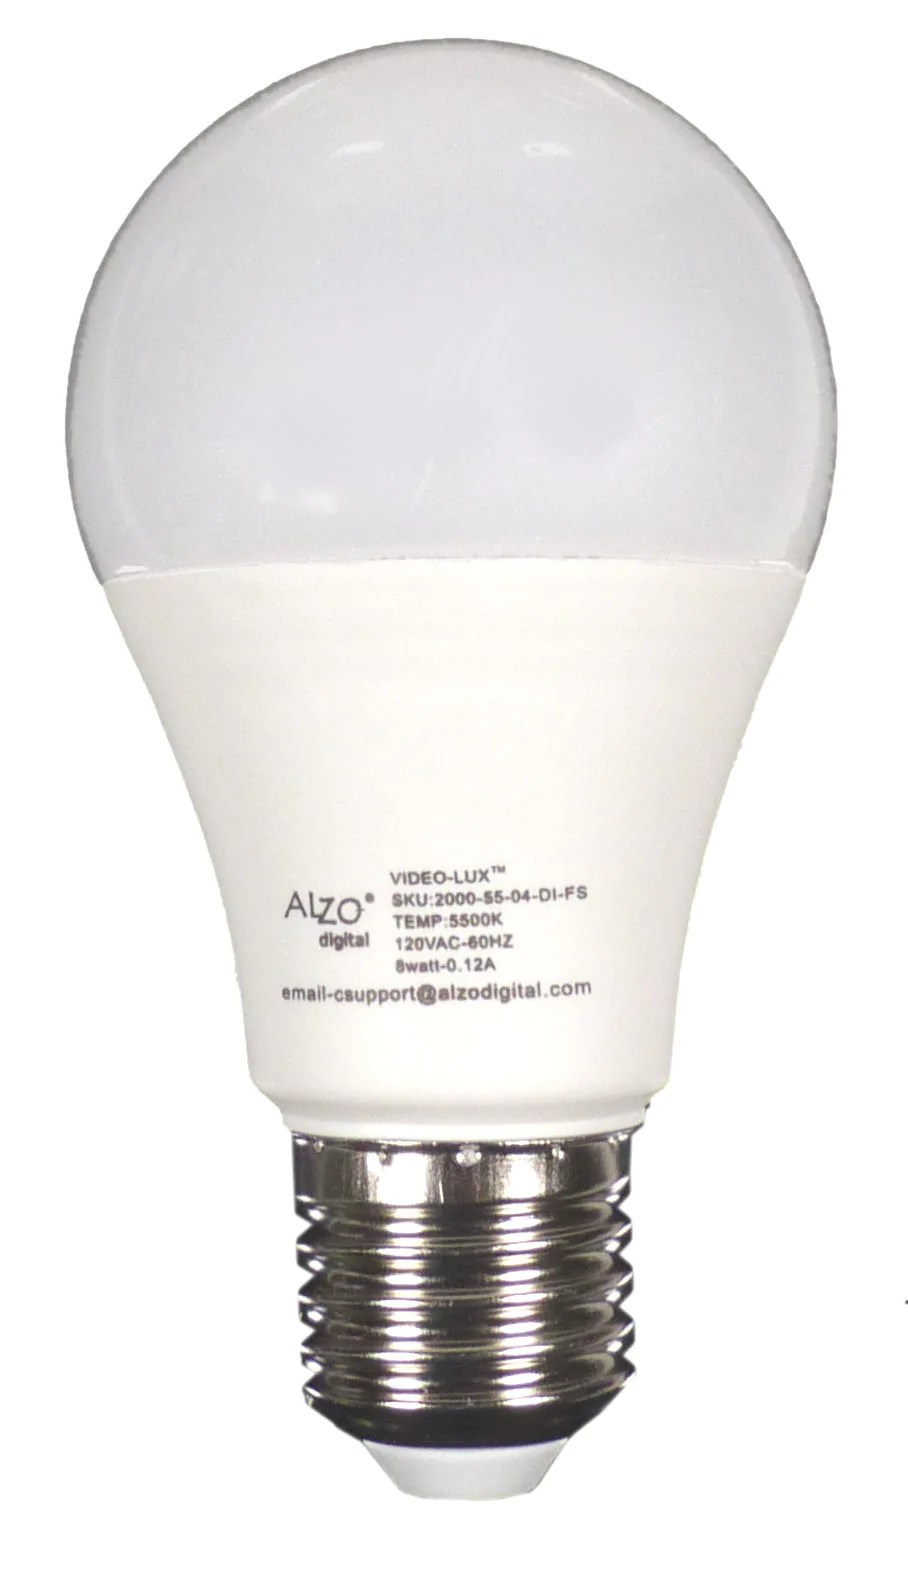 Daylight White Bulbs : daylight, white, bulbs, (75W), Joyous, Light, Dimmable, Spectrum, 5500K, Digital